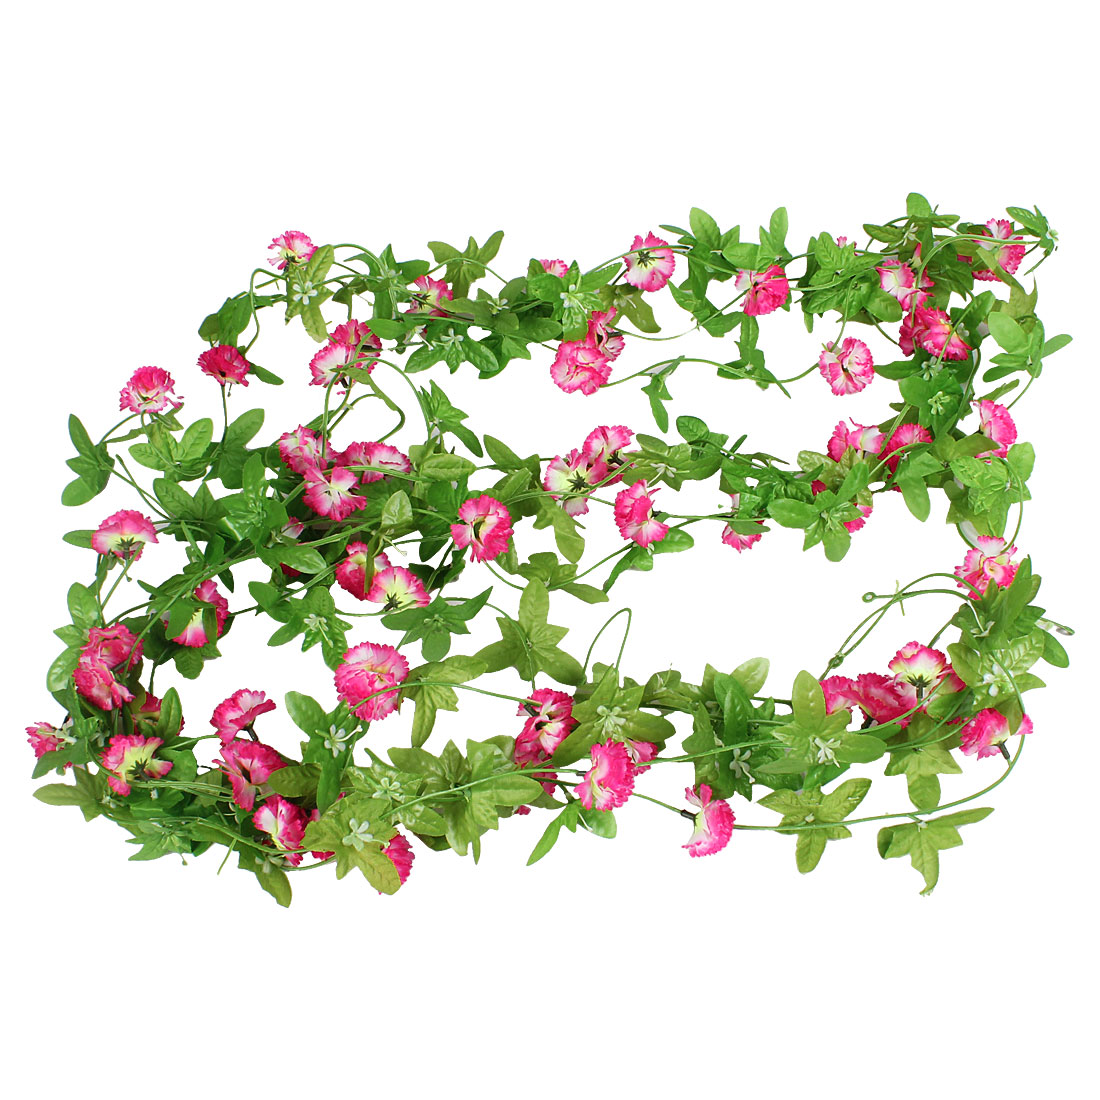 Party Decor Light Green Leaves Pink Plastic Flower Simulated Vine Plant 8.5Ft 5 Pcs